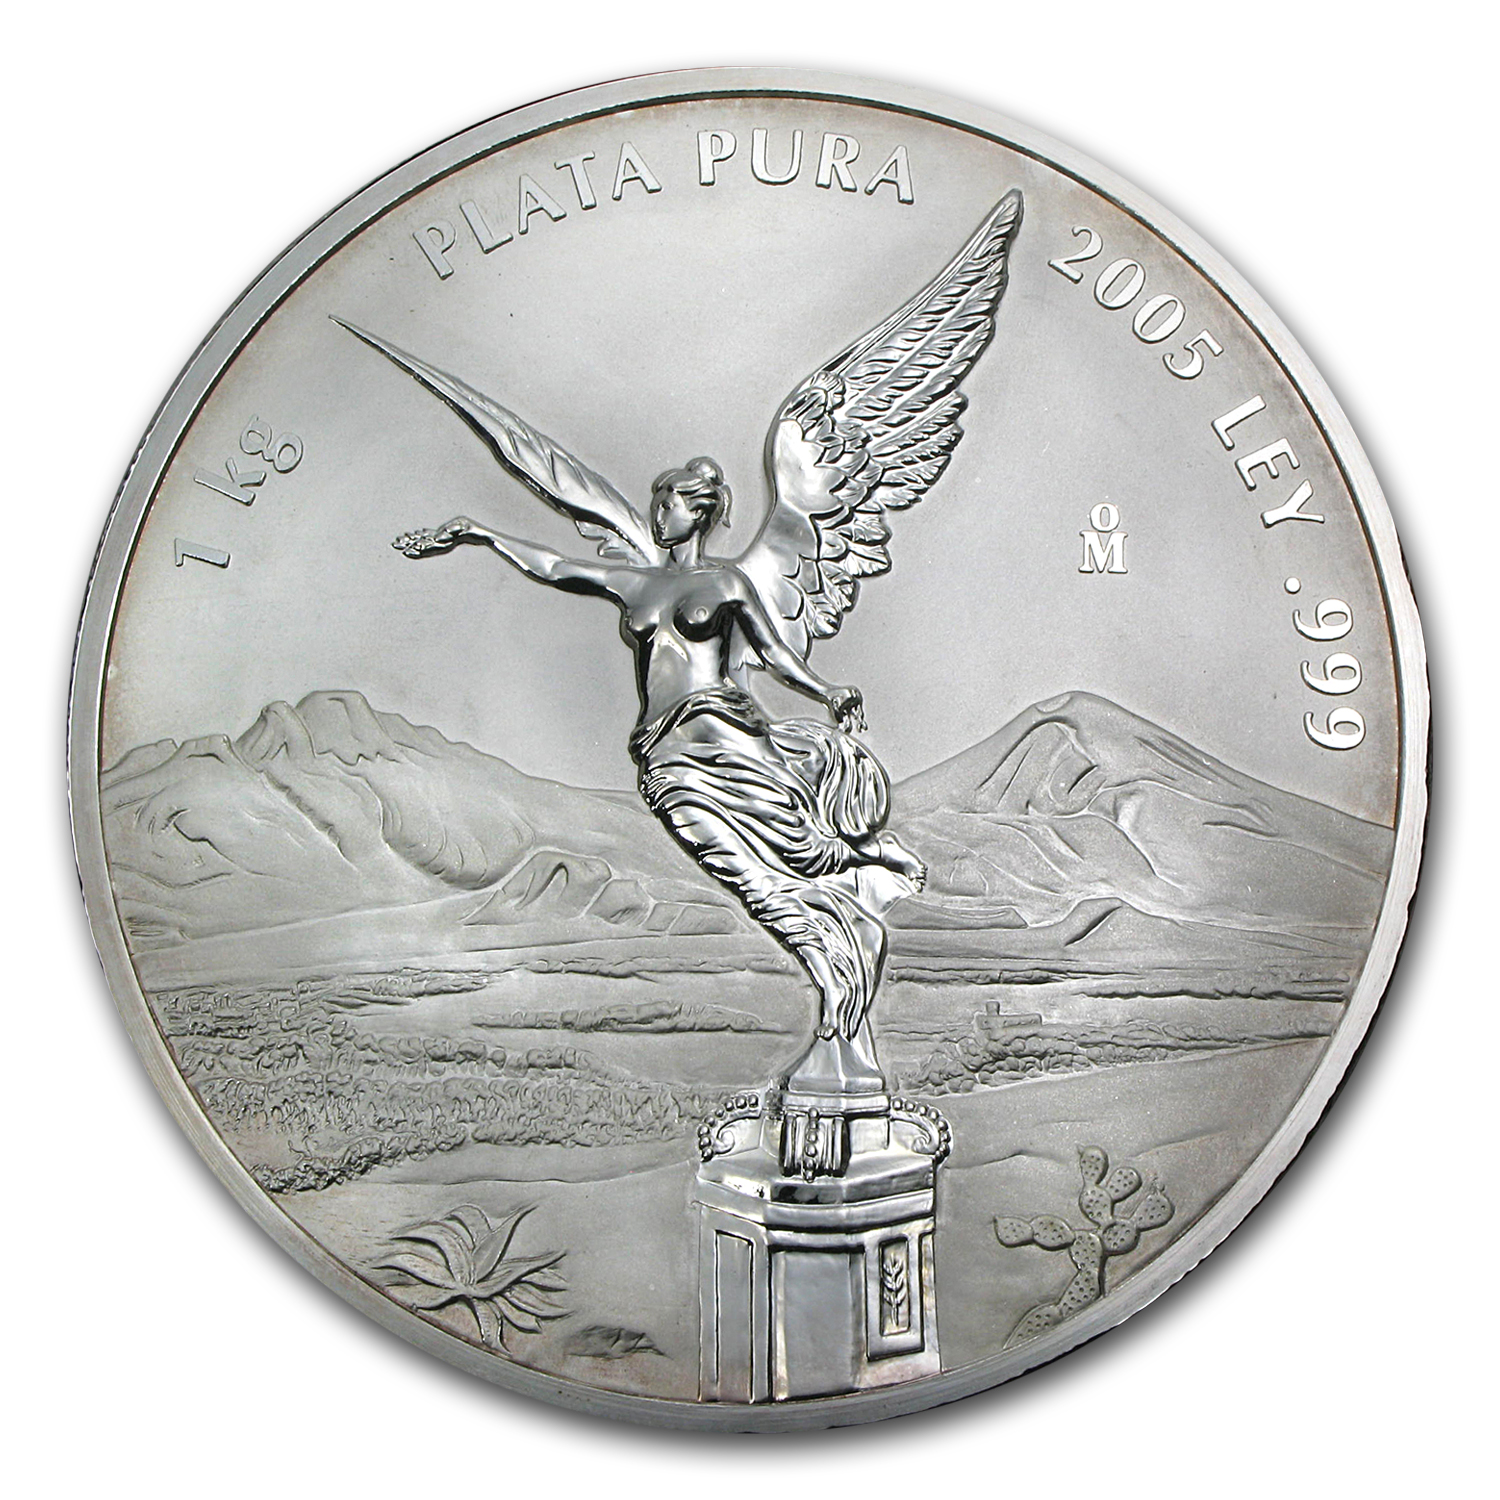 2005 Mexico 1 kilo Silver Libertad Proof Like (w/Box & COA)